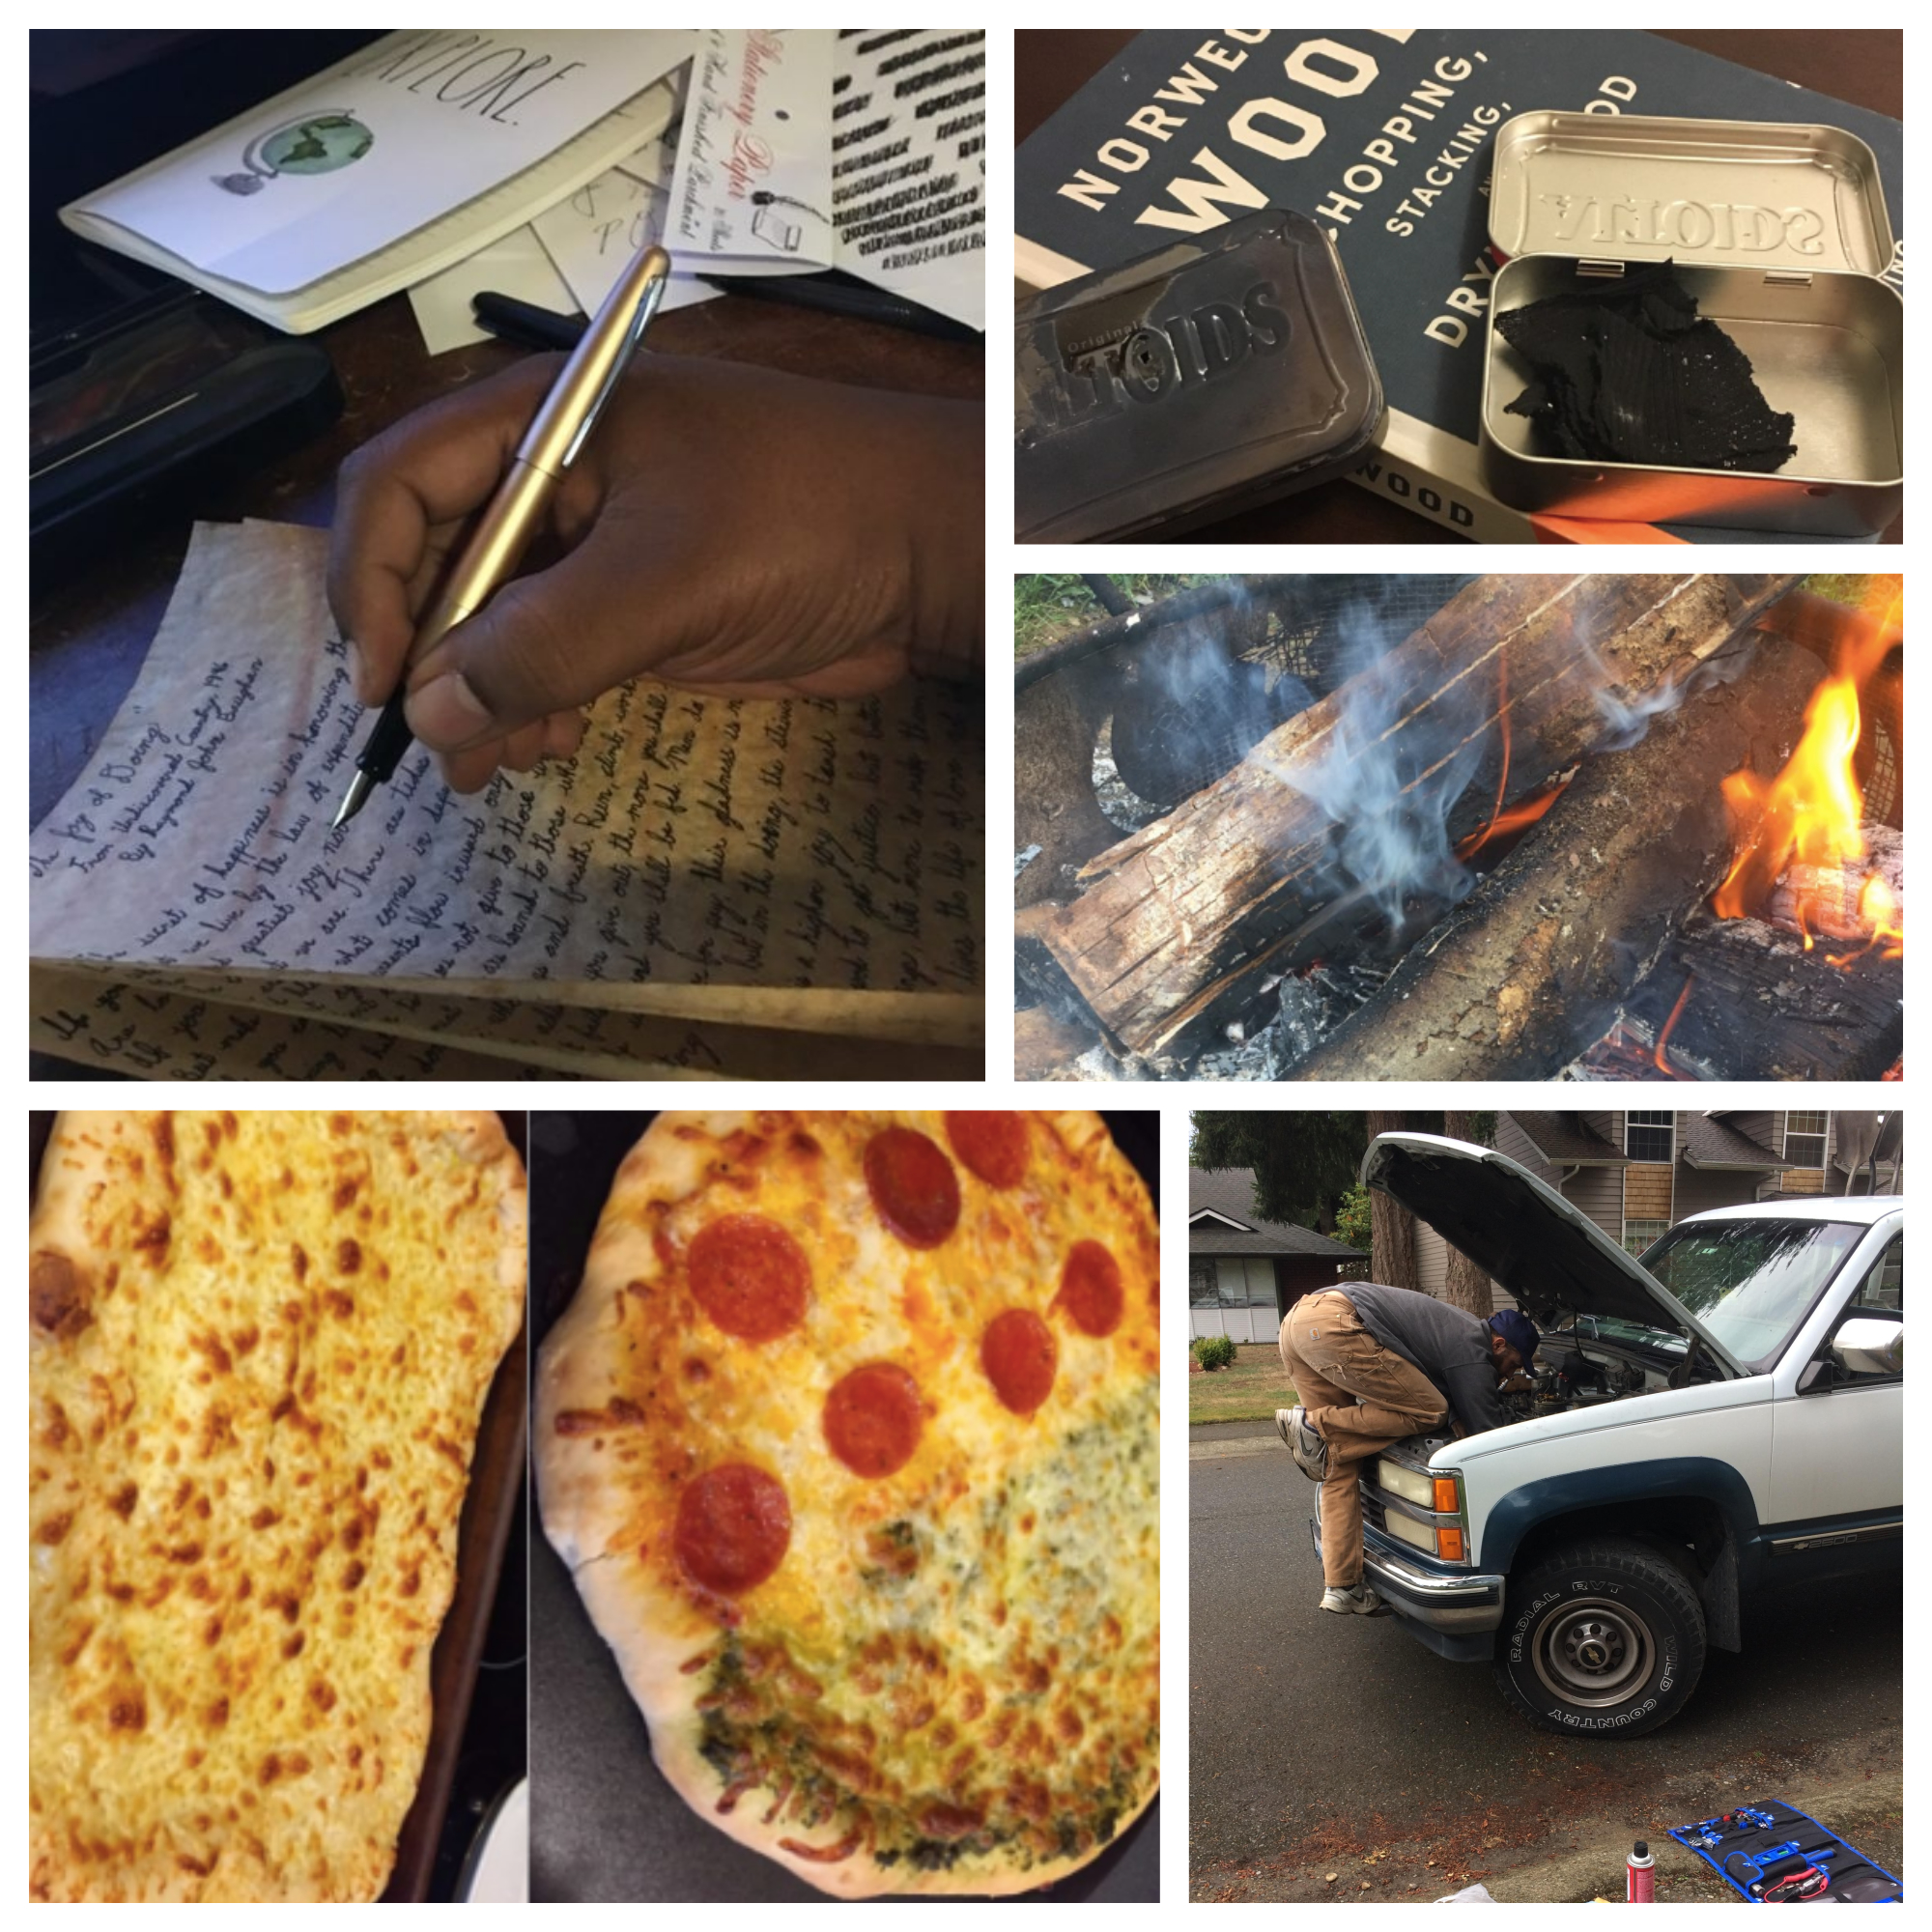 Collection of pizza, man fixing his car, woods on fire, man writing on a paper and a metal box with a black material displayed.